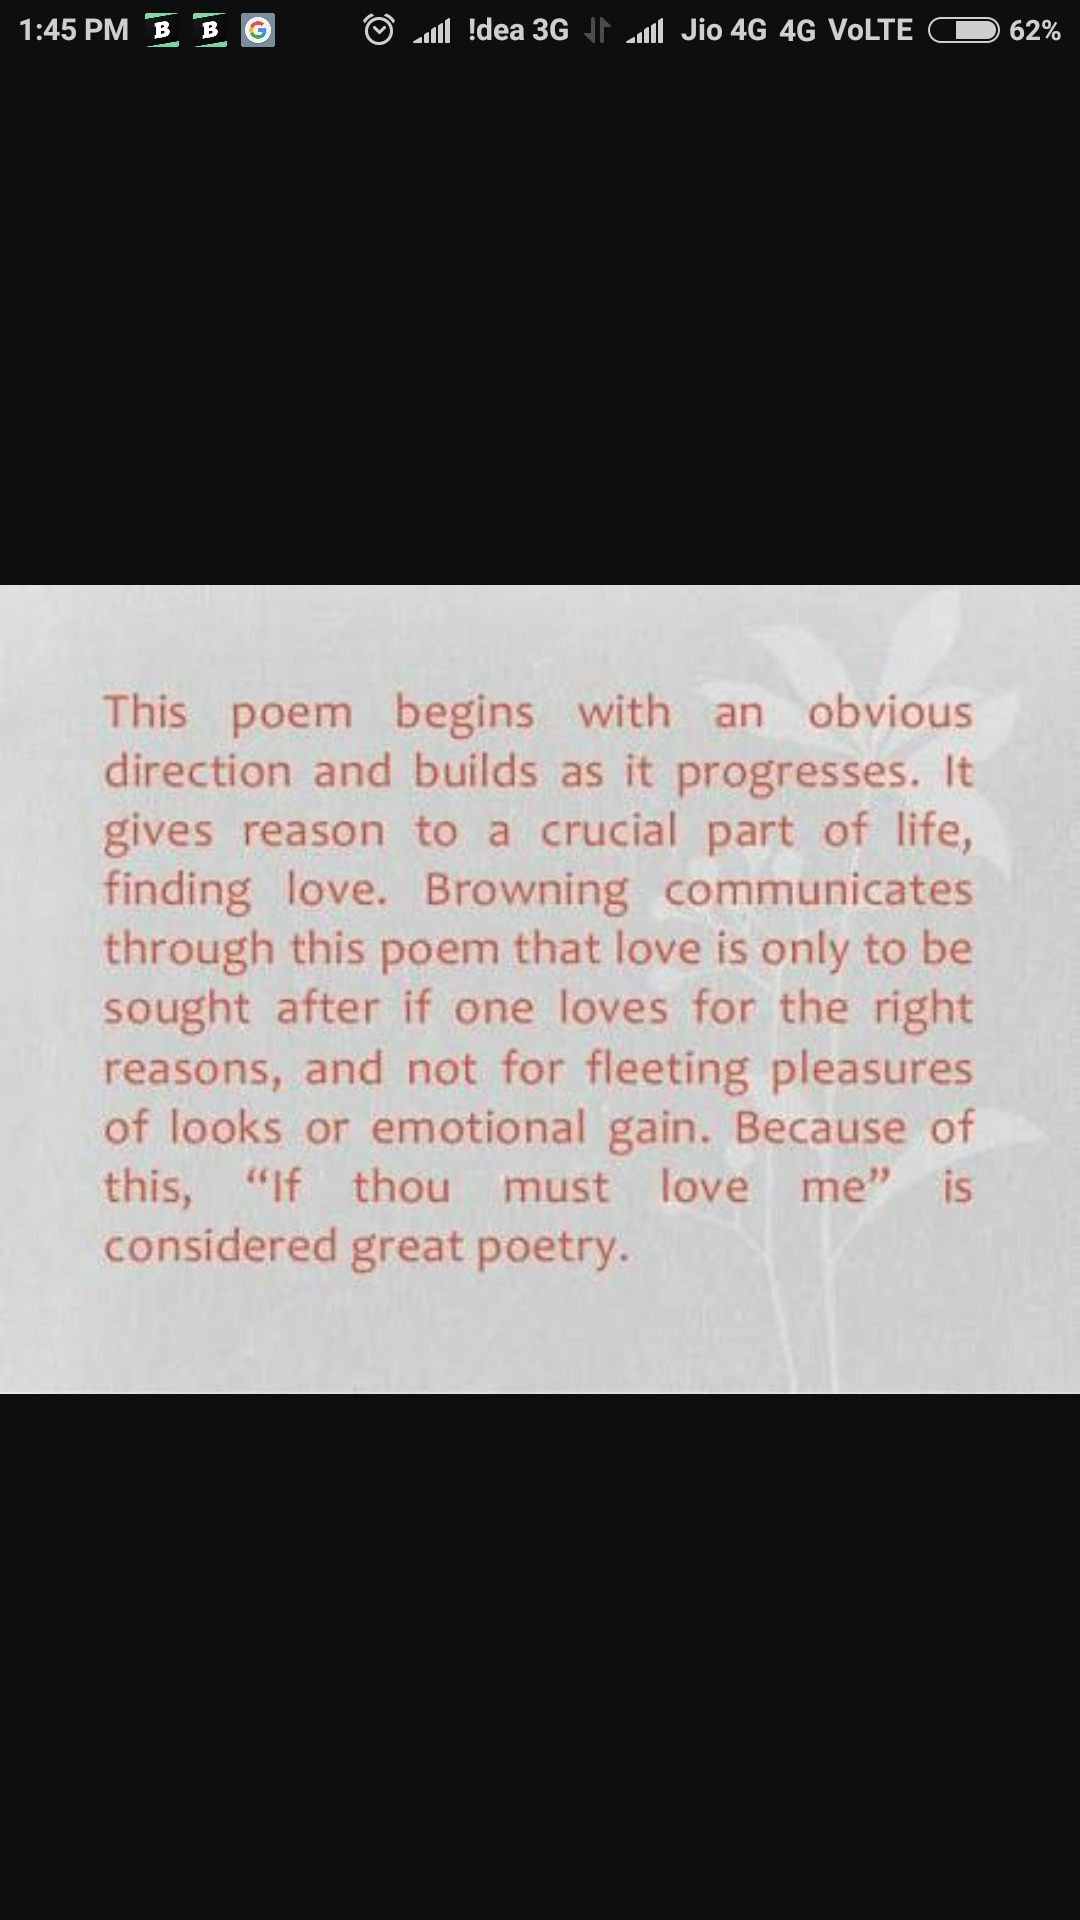 summary of the poem if thou must love me